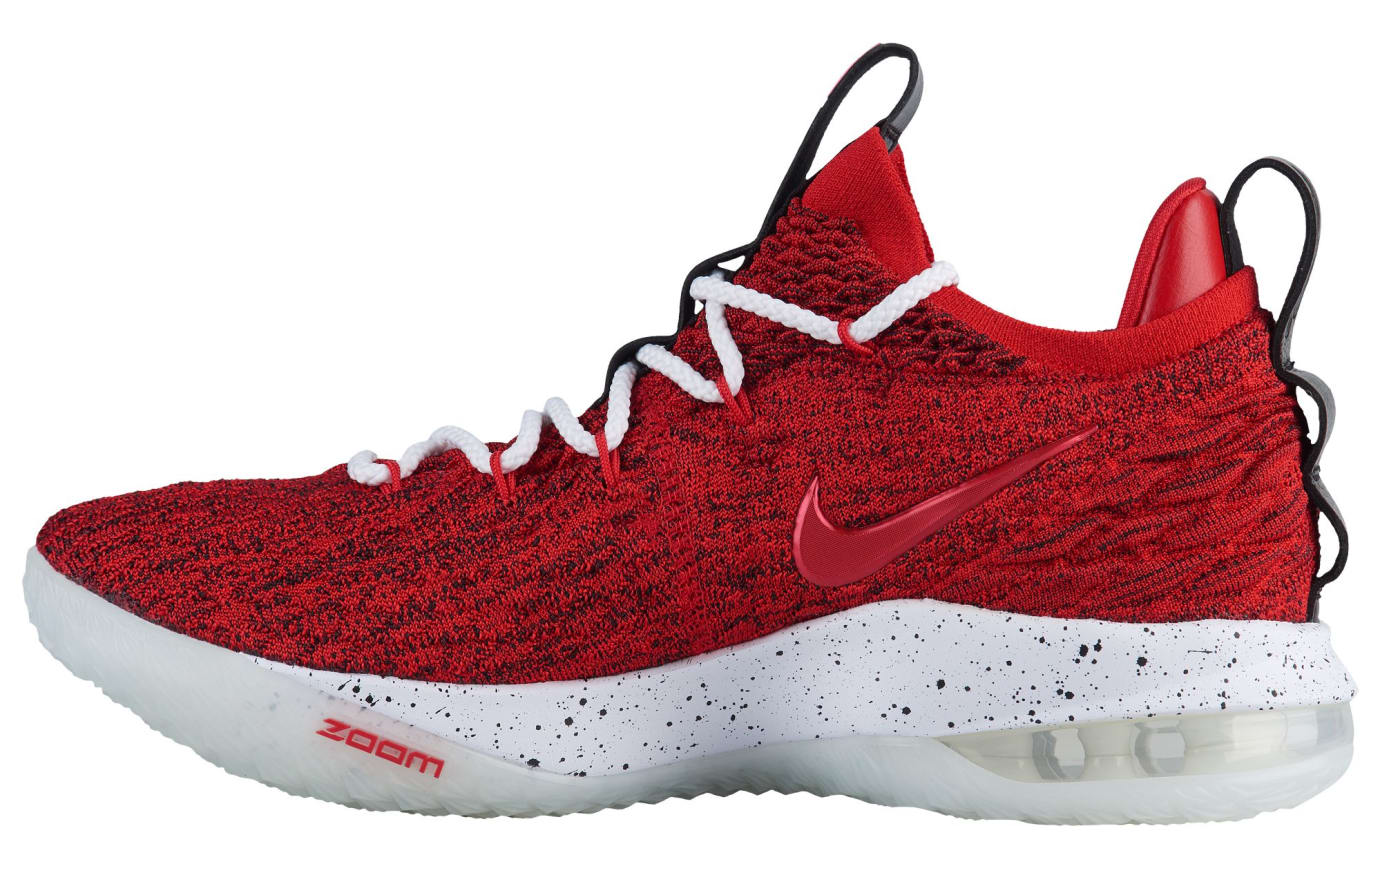 3c364199c115 Nike LeBron 15 XV Low University Red Release Date AO1755-600